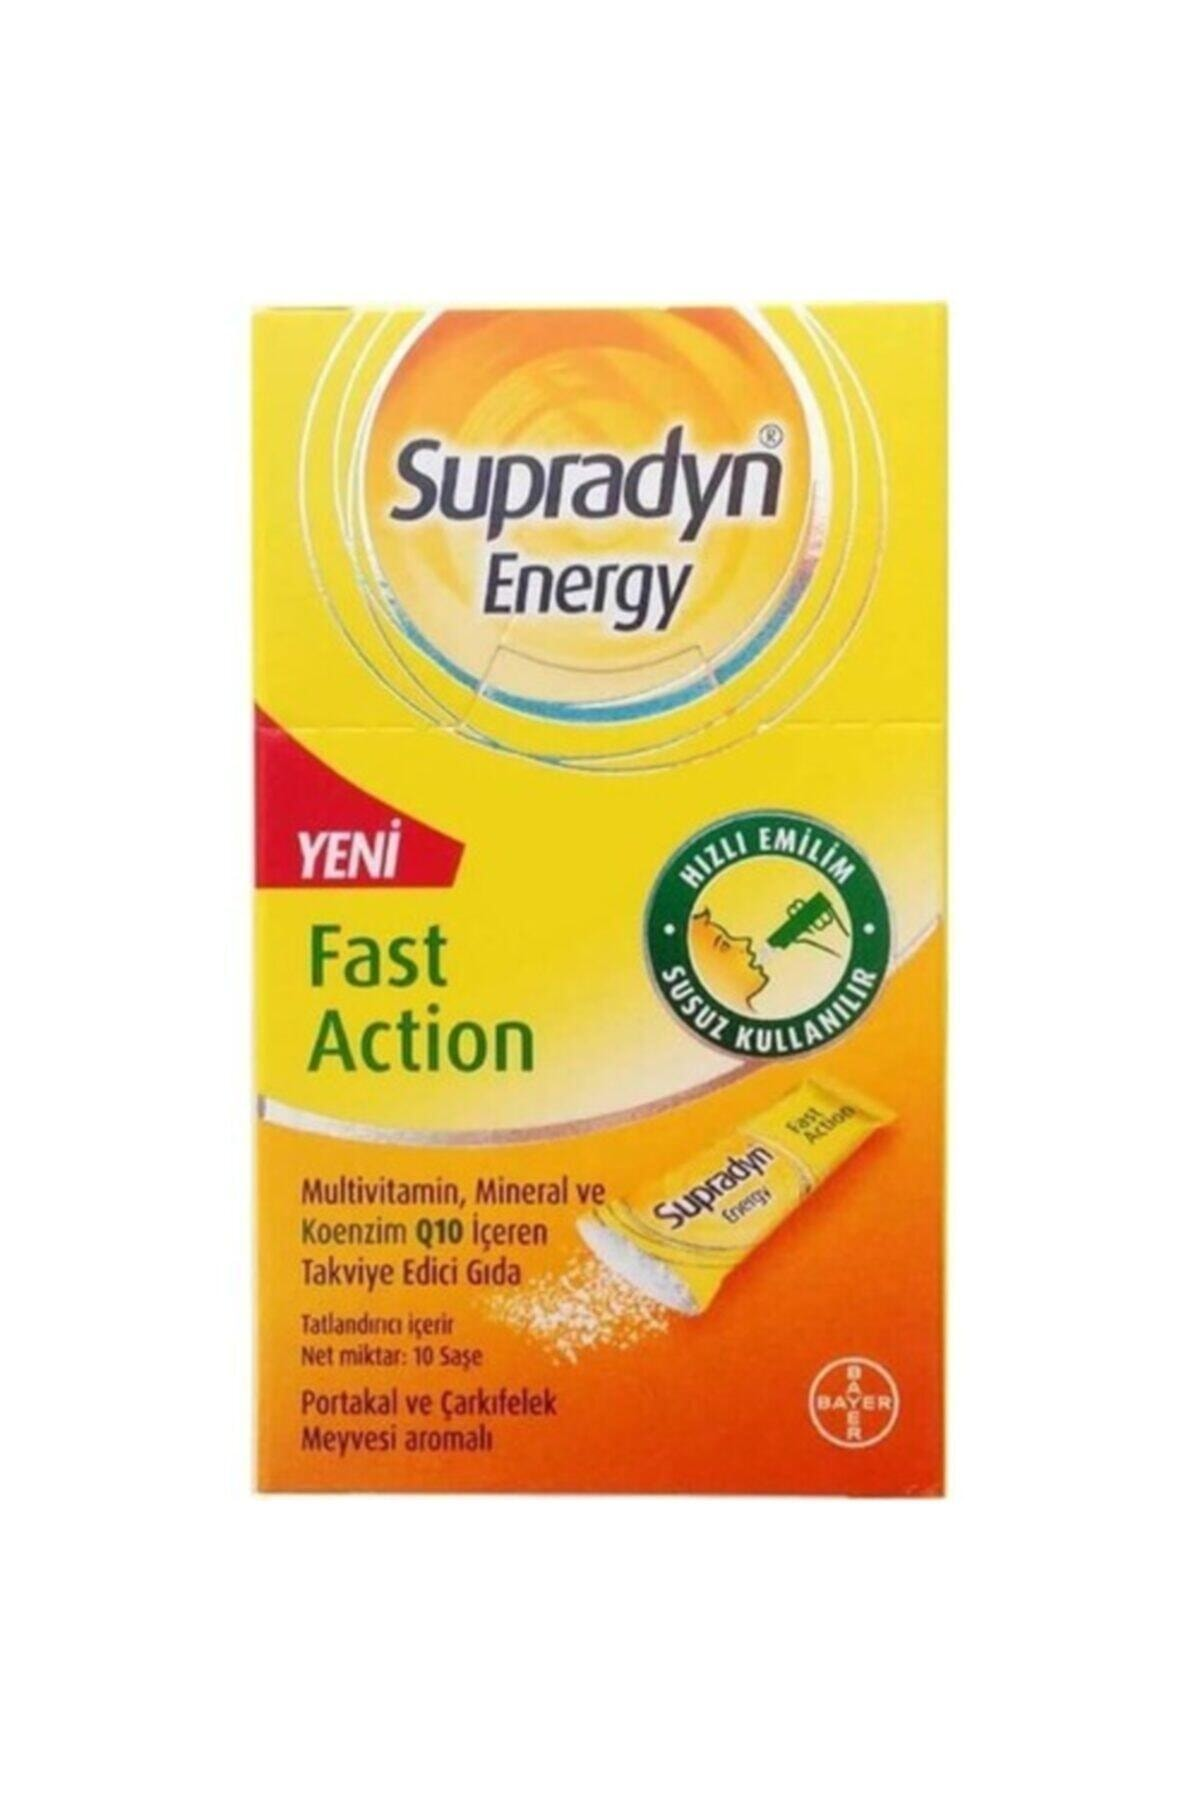 Supradyn Energy Fast Action 10 Saşe 1